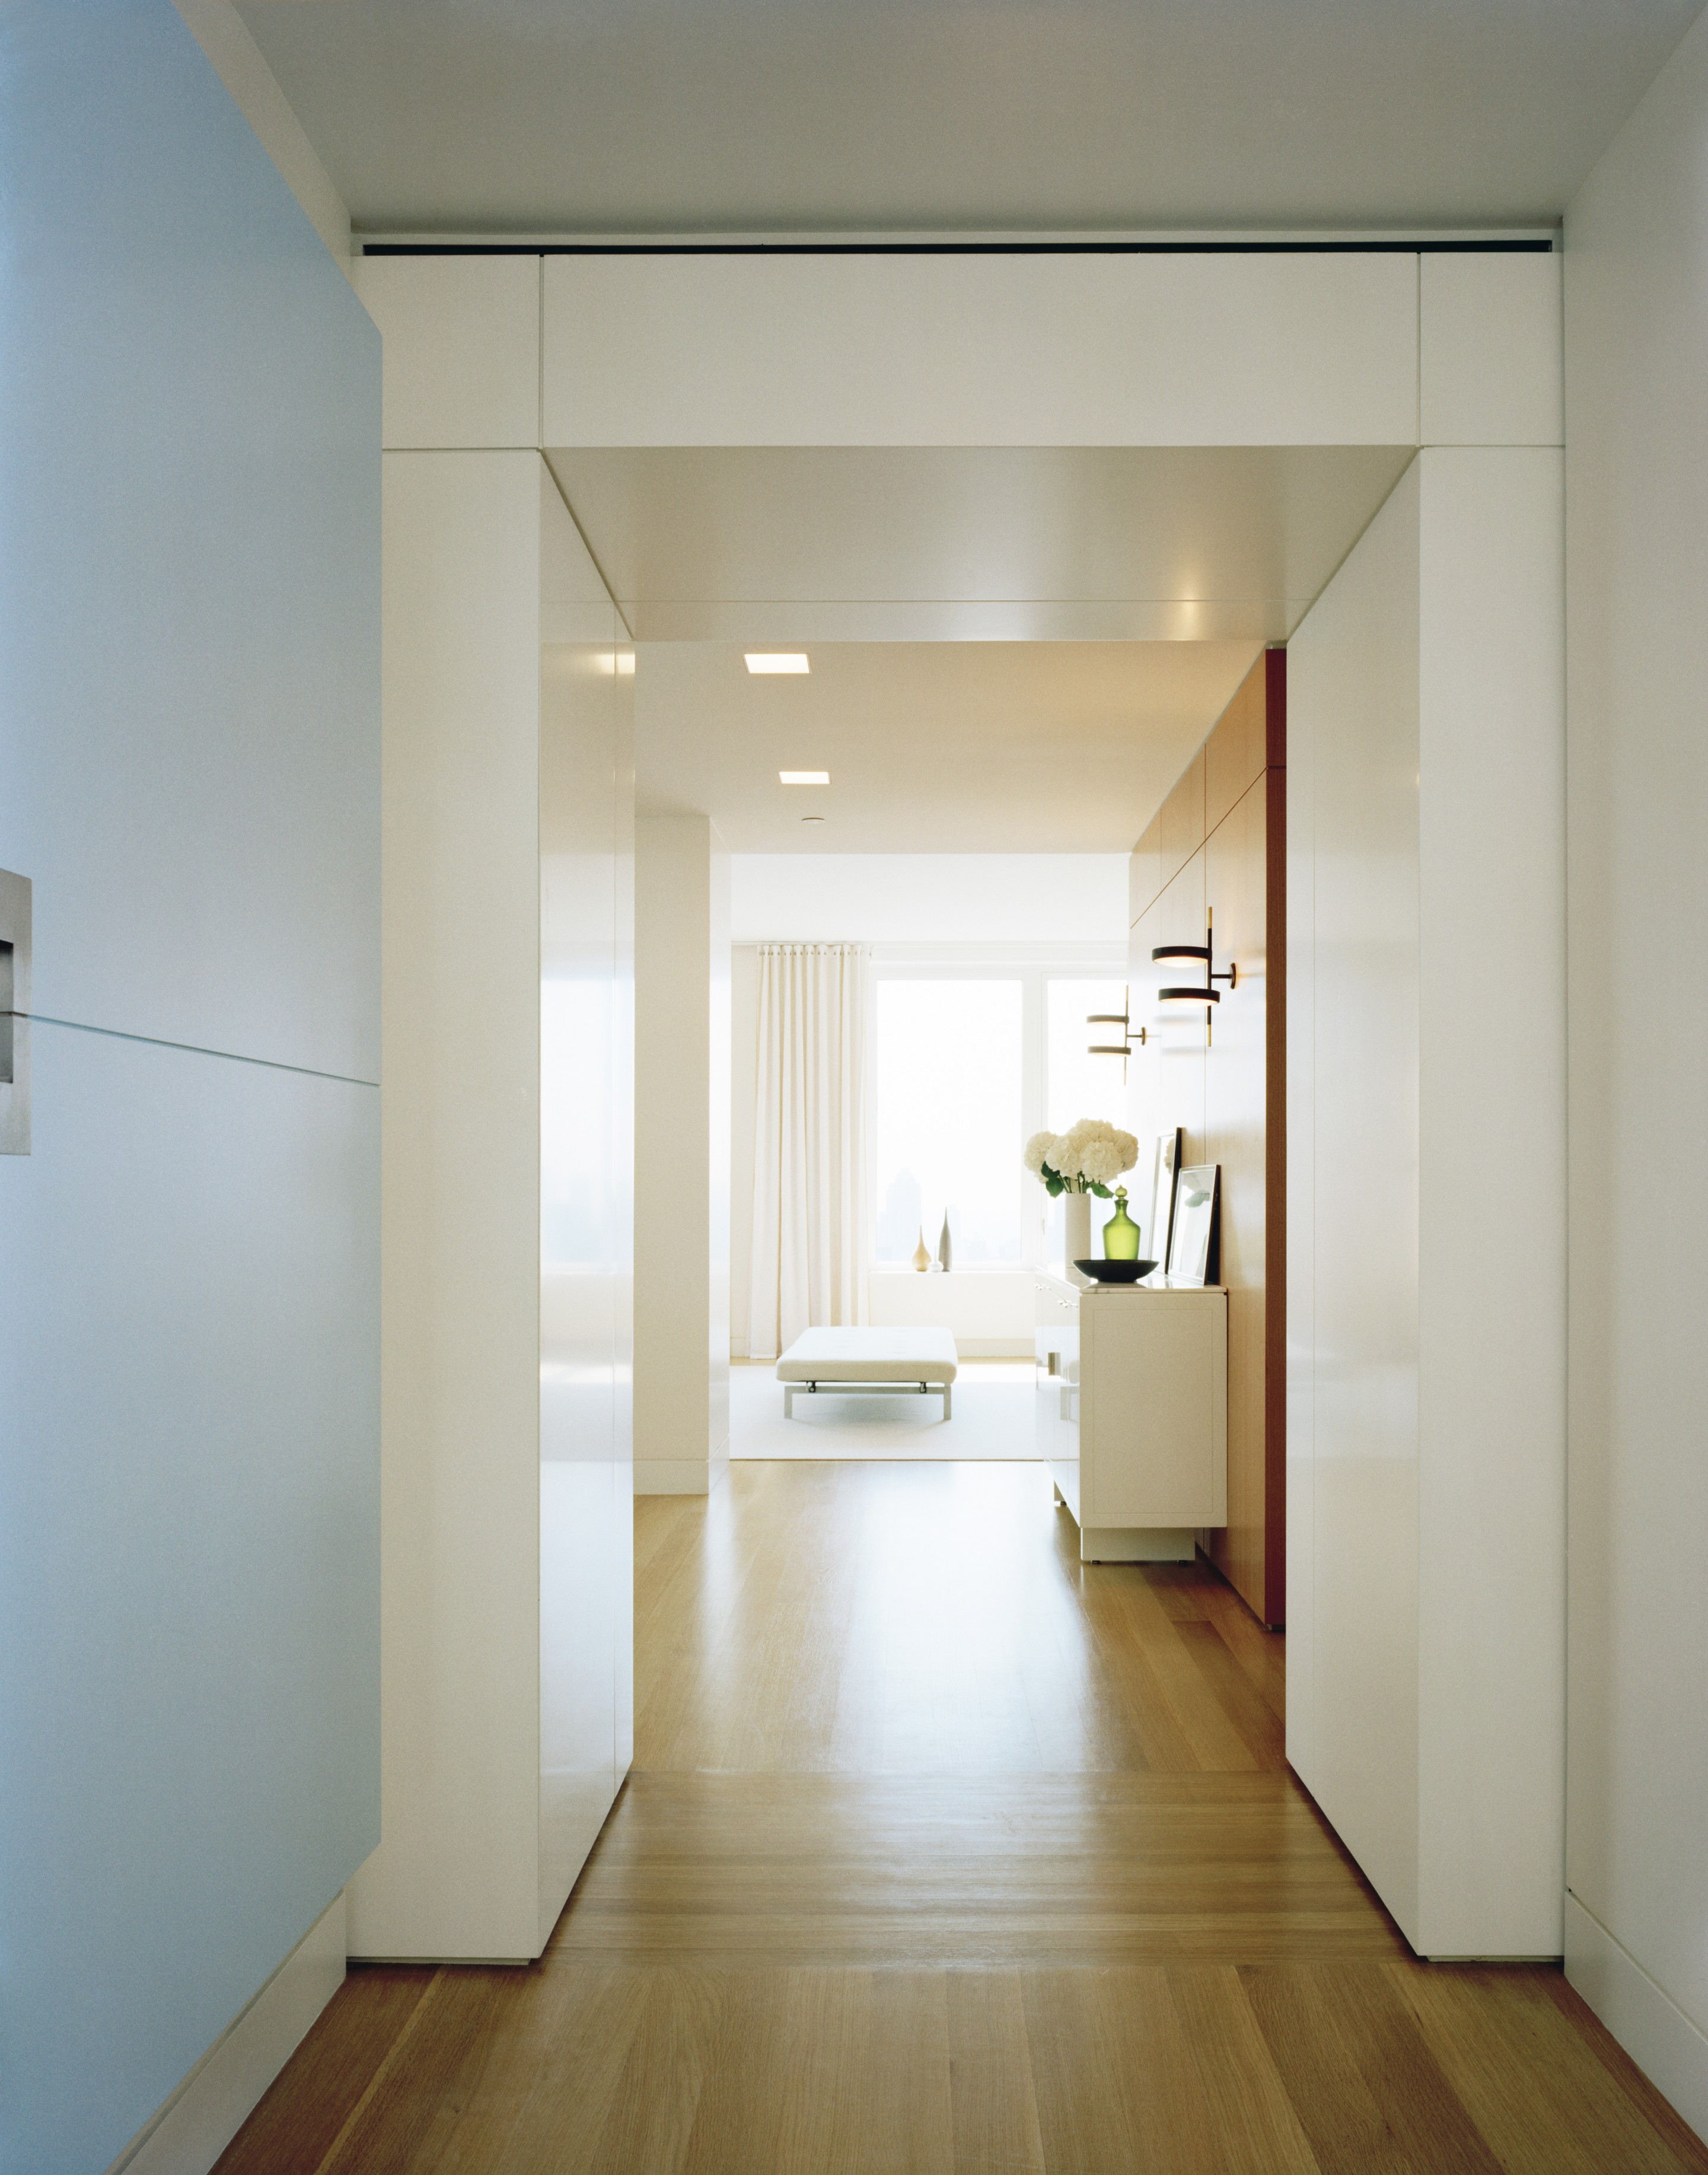 Upper West Side Residence Shelton, Mindel & Associates, Inc.